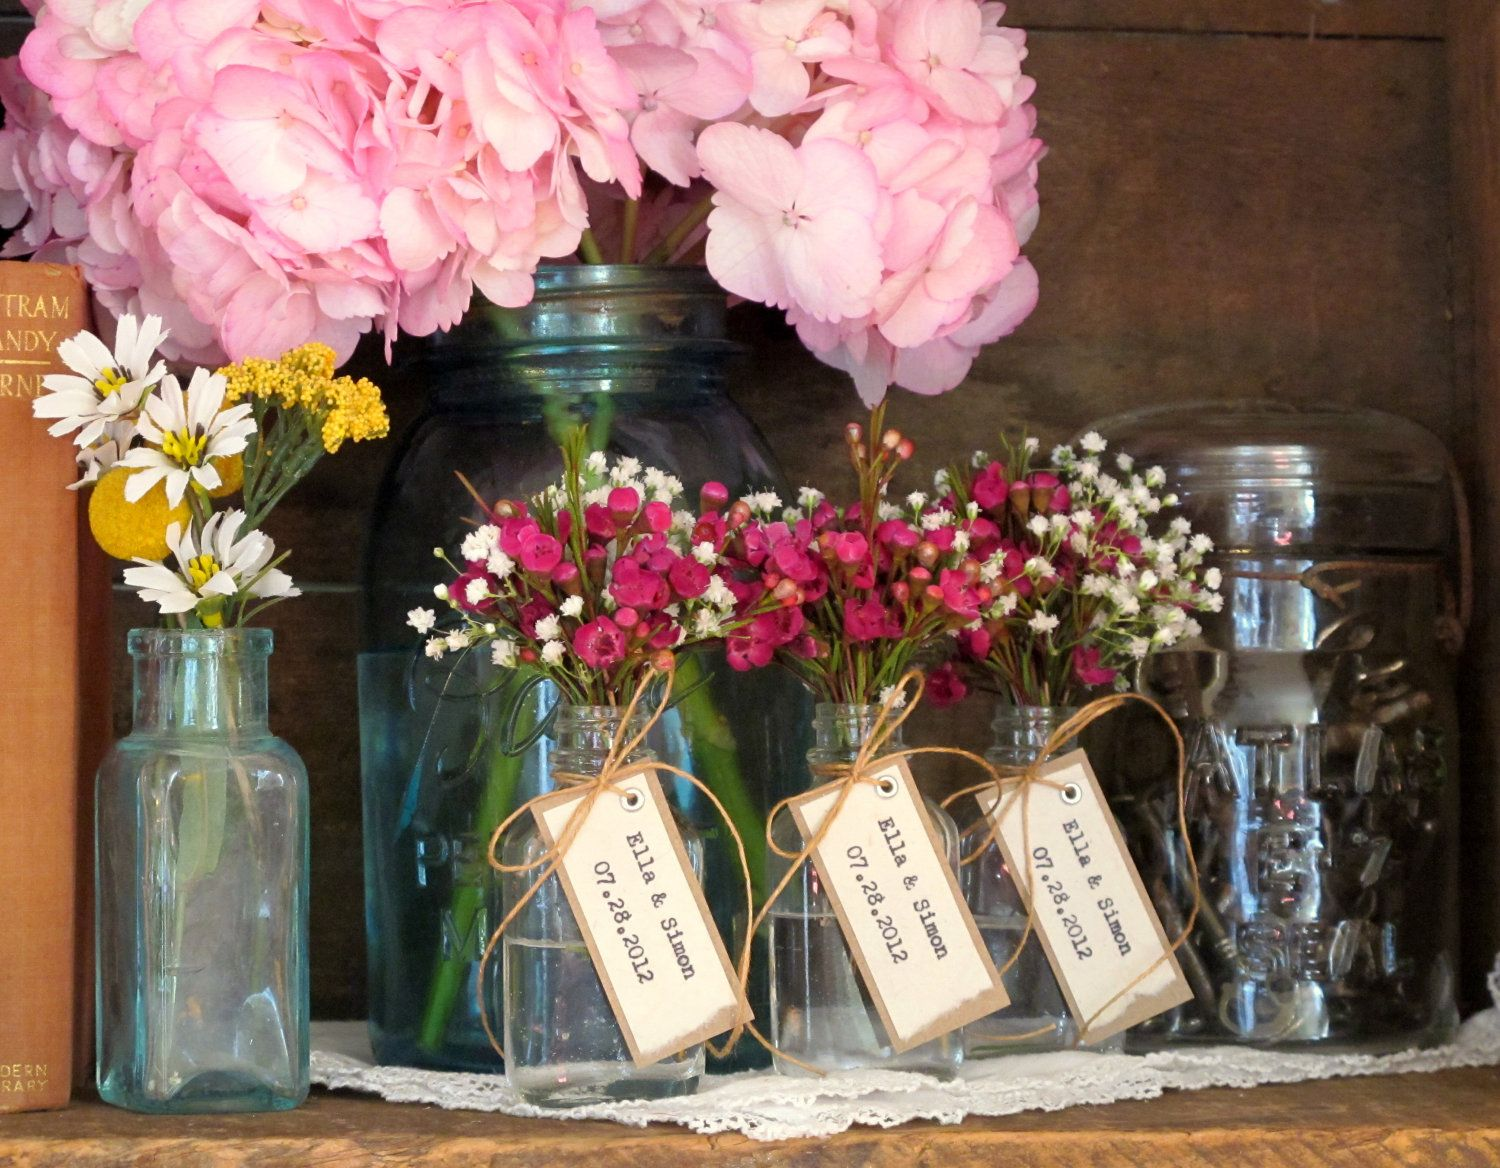 Unique Wedding Favor Bridal Shower Bride Groom Names W Date Rustic Vintage Inspired Natural By Joblake On Etsy